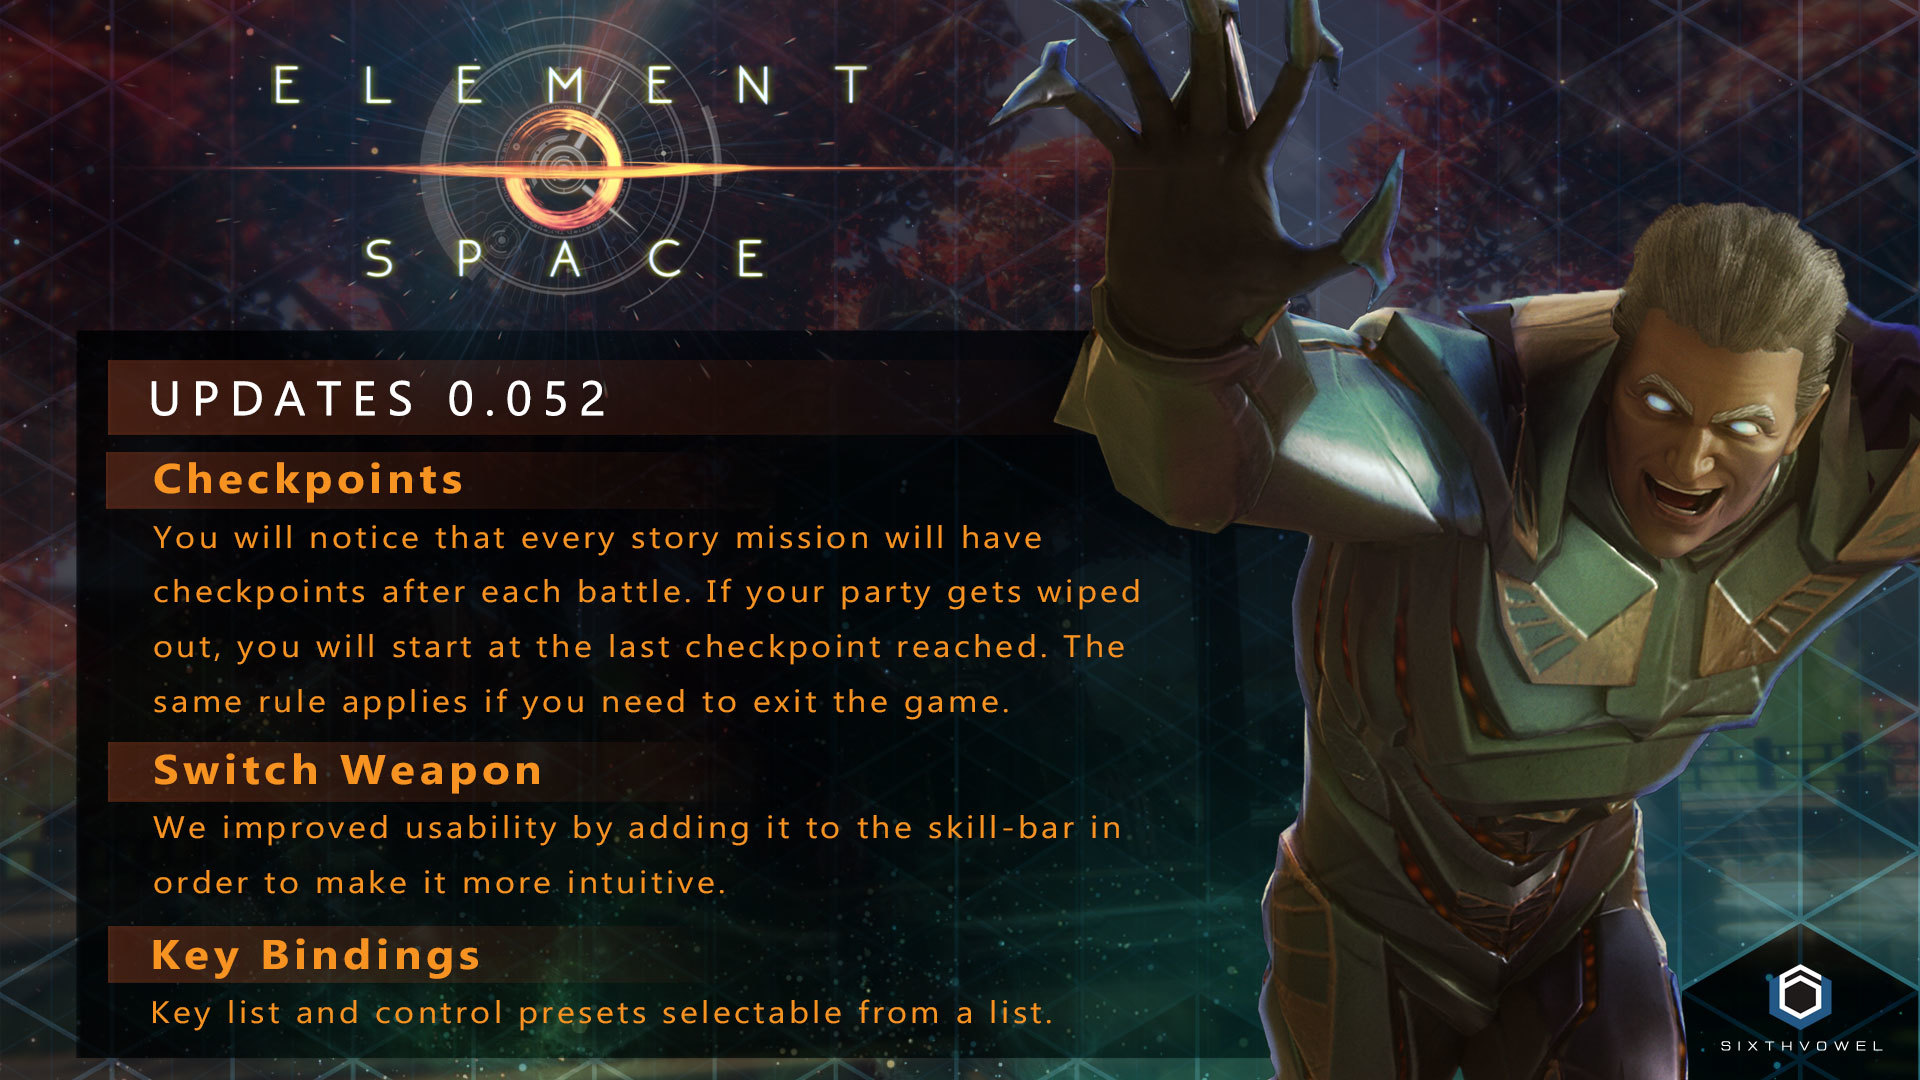 Jan 15 Update Version 0 0 52 | January 16th Element: Space